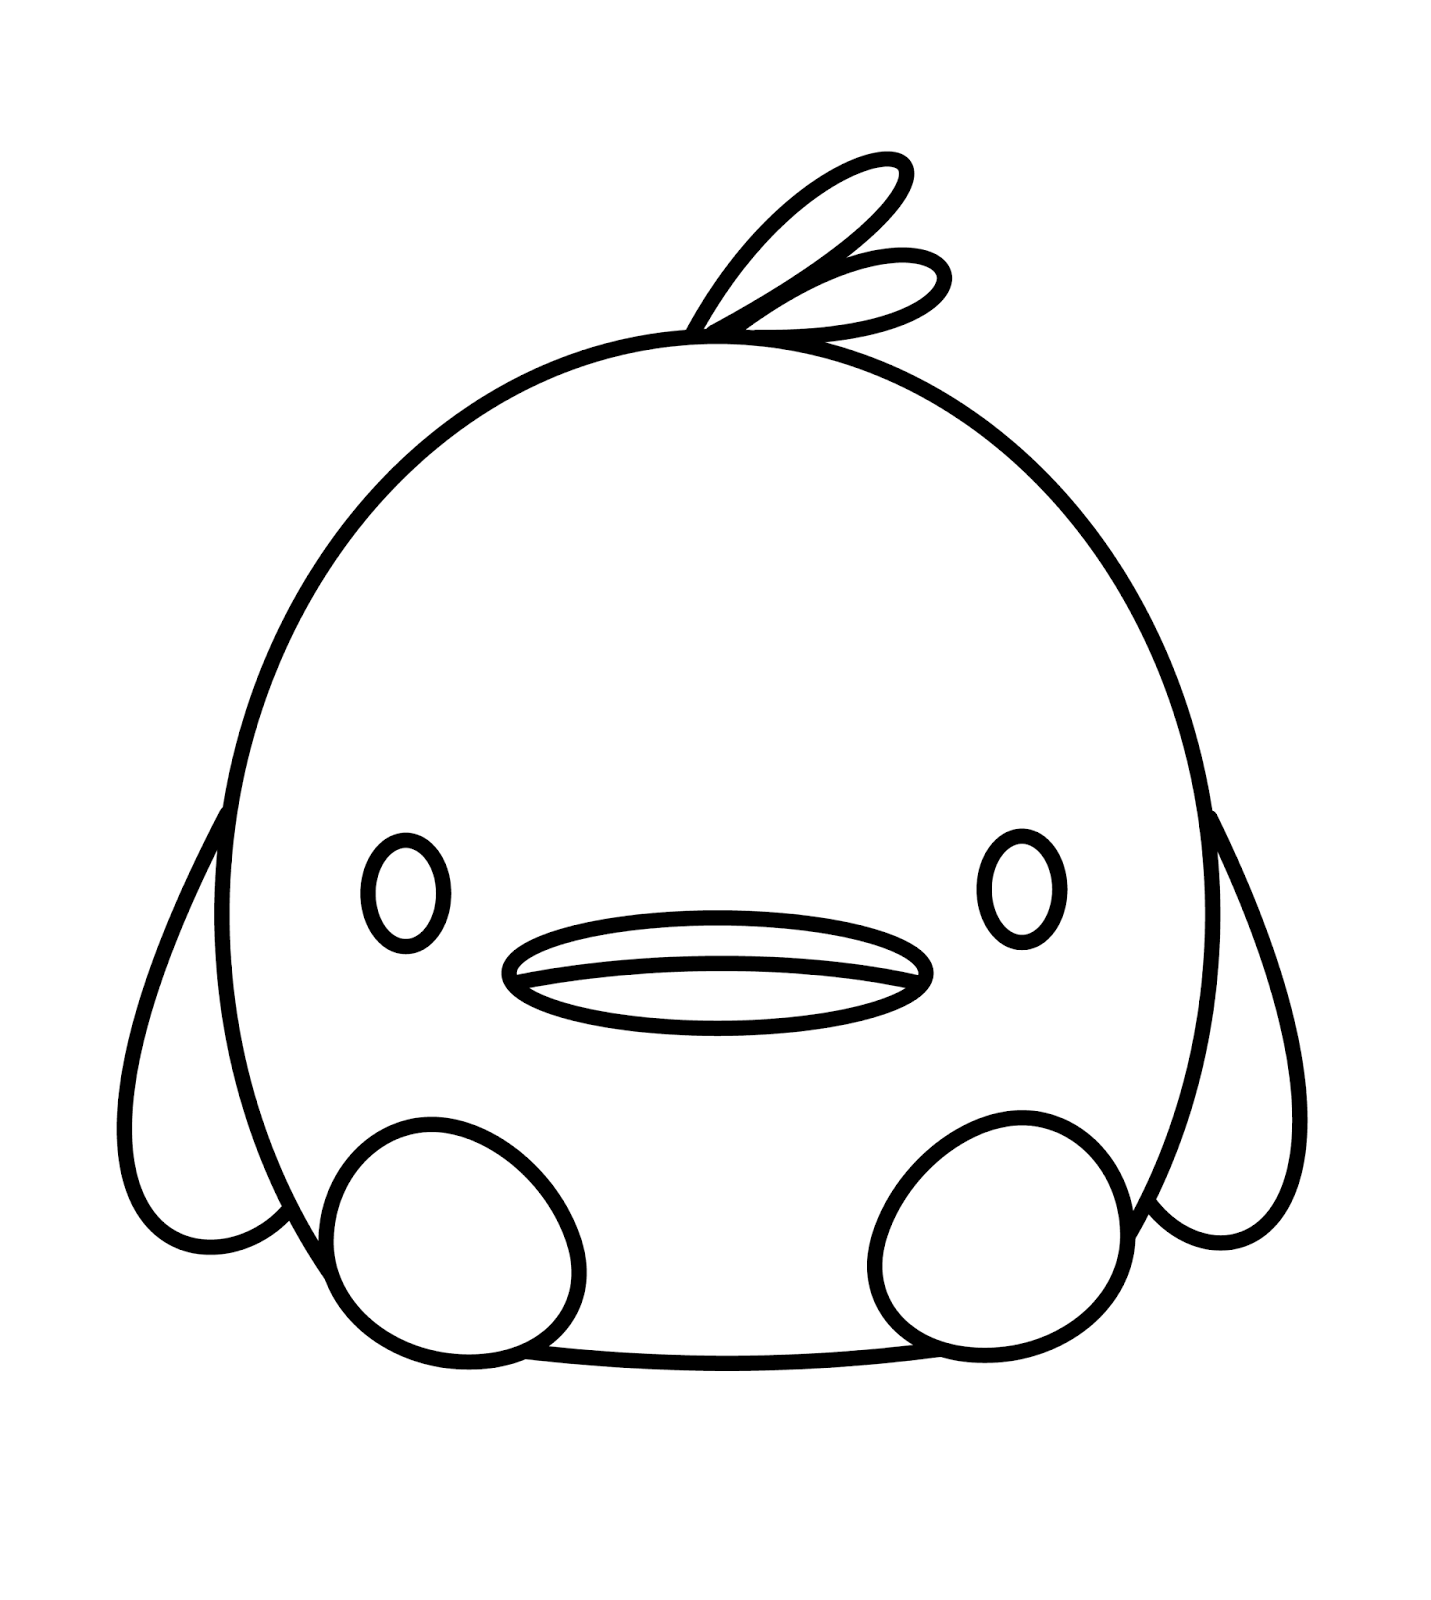 Drawn duckling A Draw Kawaii To Duck